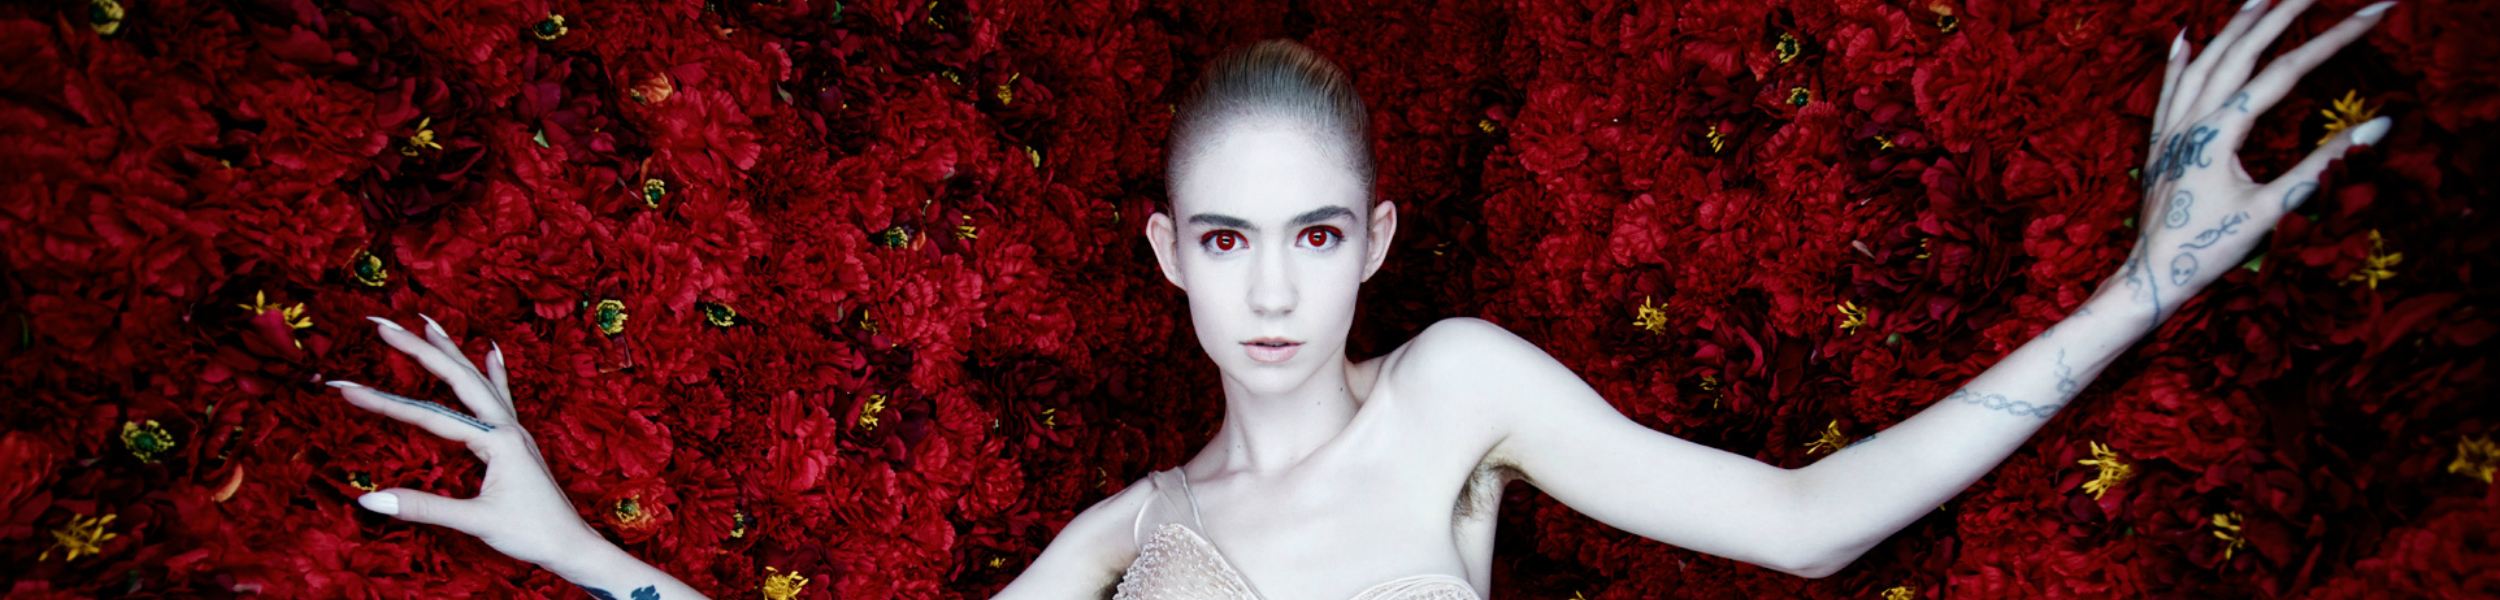 Grimes - Grimes schedules new album Visions, brand new track online now and US tour starts next month